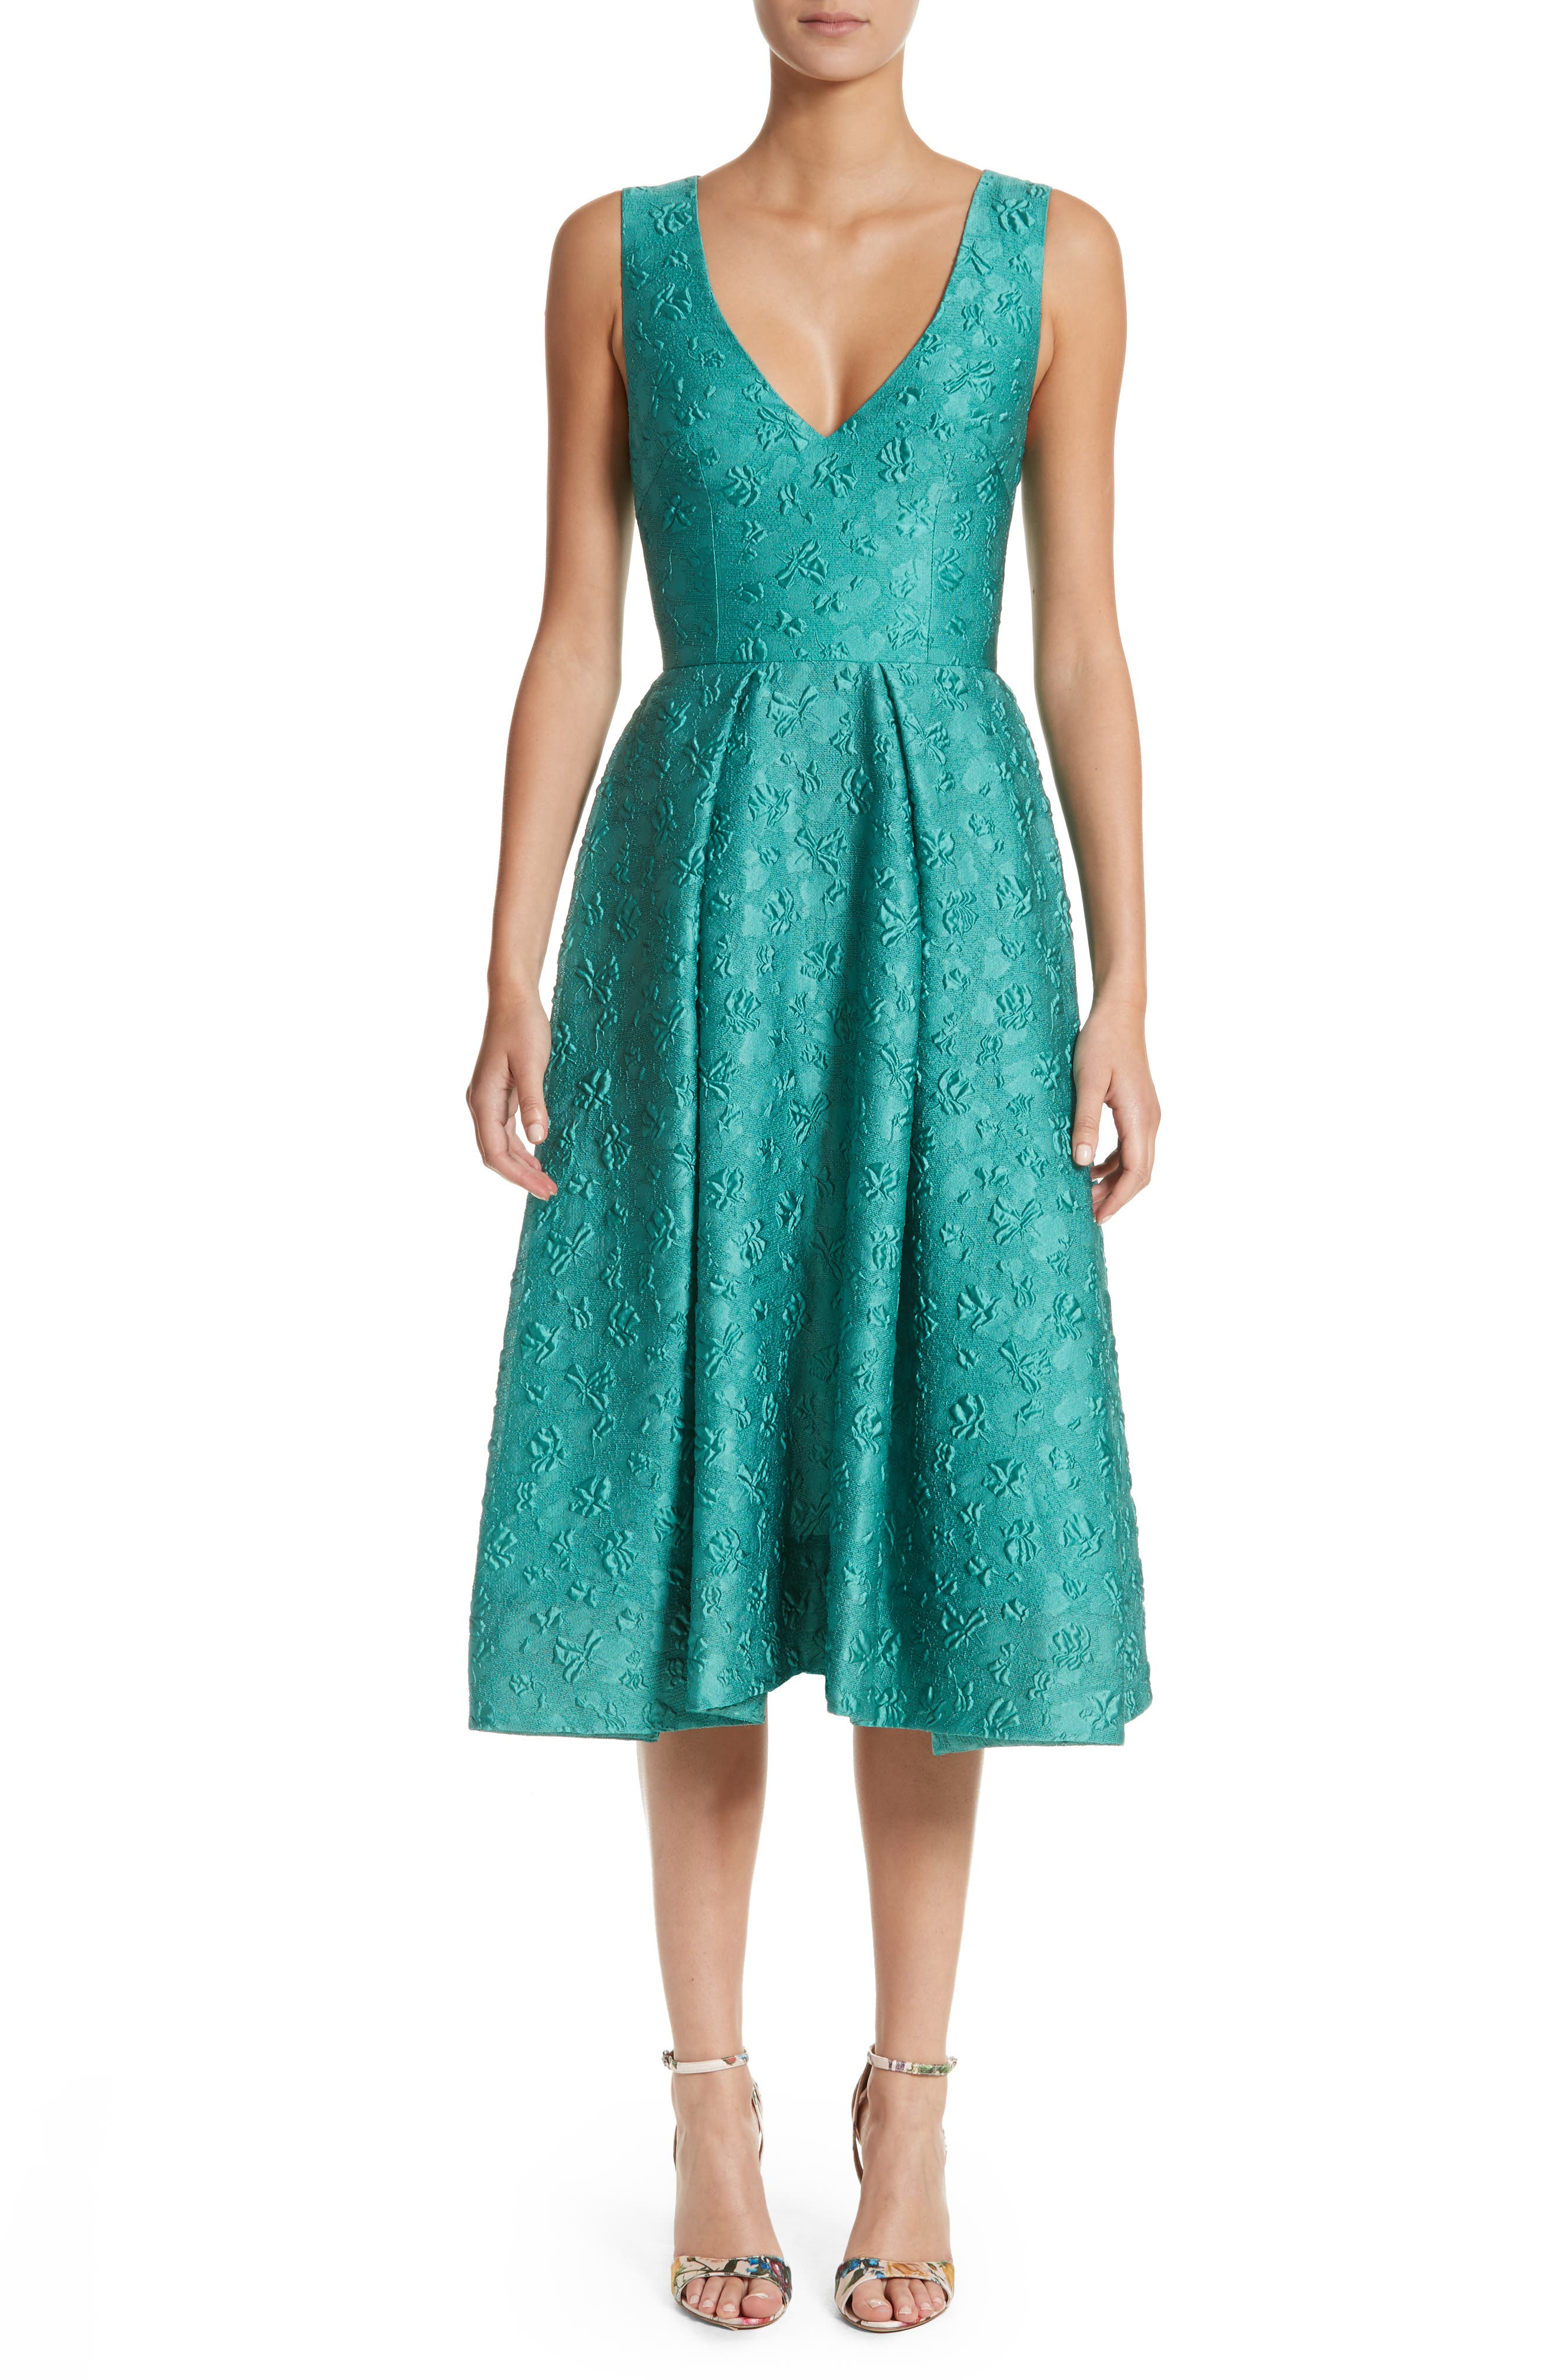 Monique Lhuillier Matelassé A-Line Dress